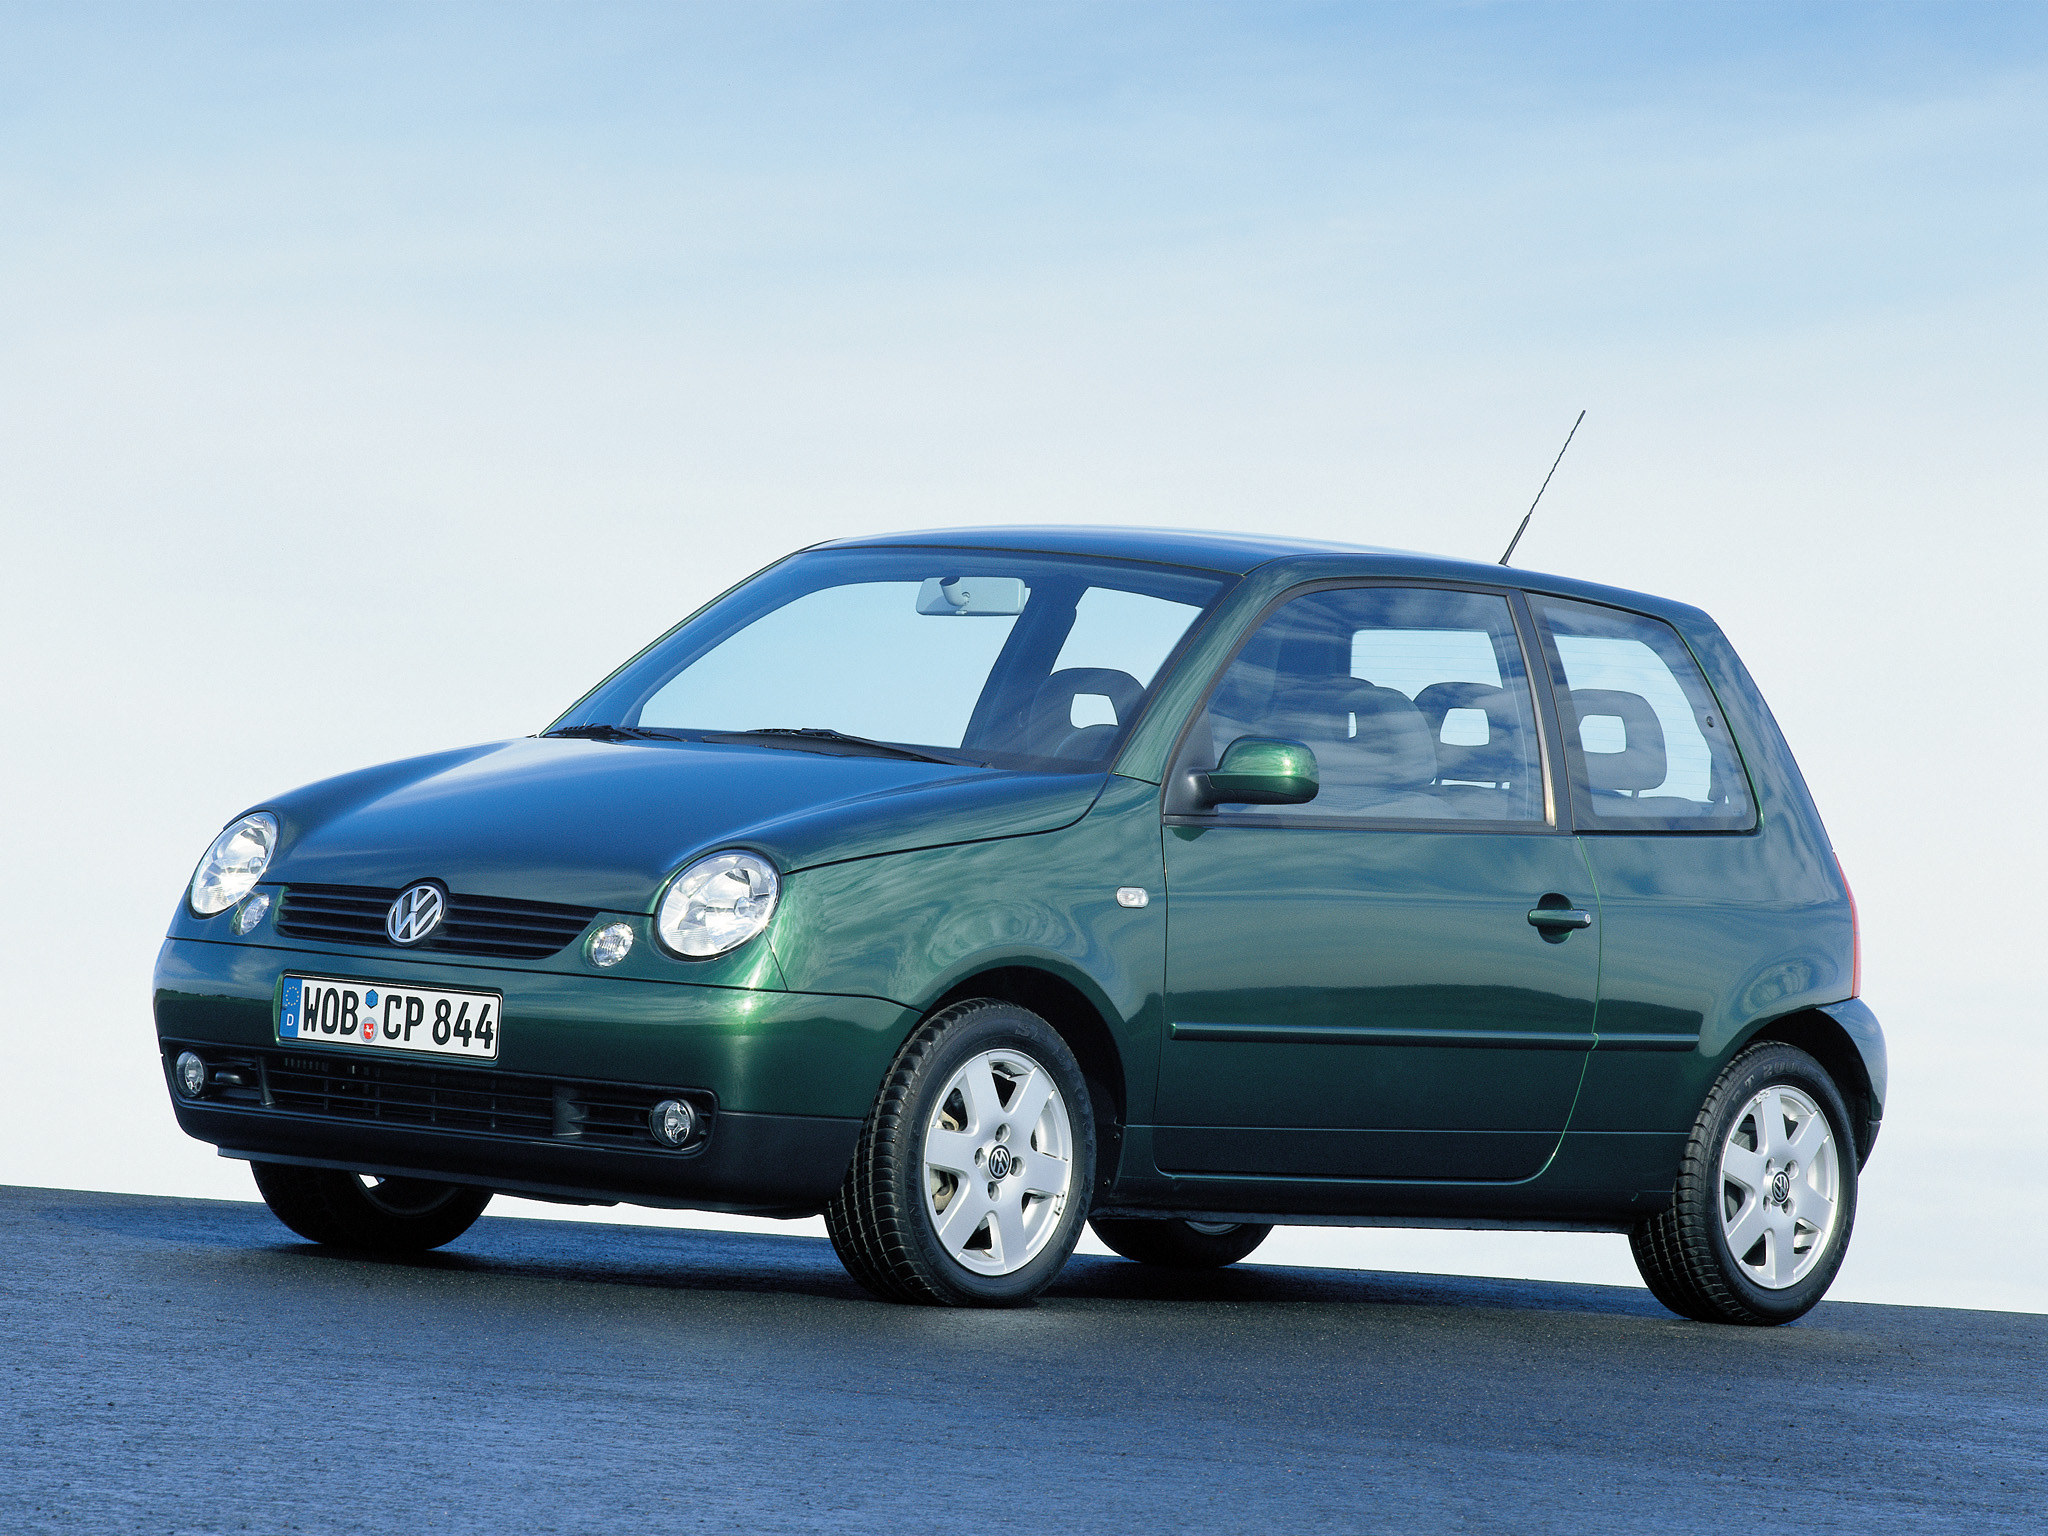 1999 volkswagen lupo 6x pictures information and specs auto volkswagen lupo 6x 1999 pics 6 fandeluxe Gallery